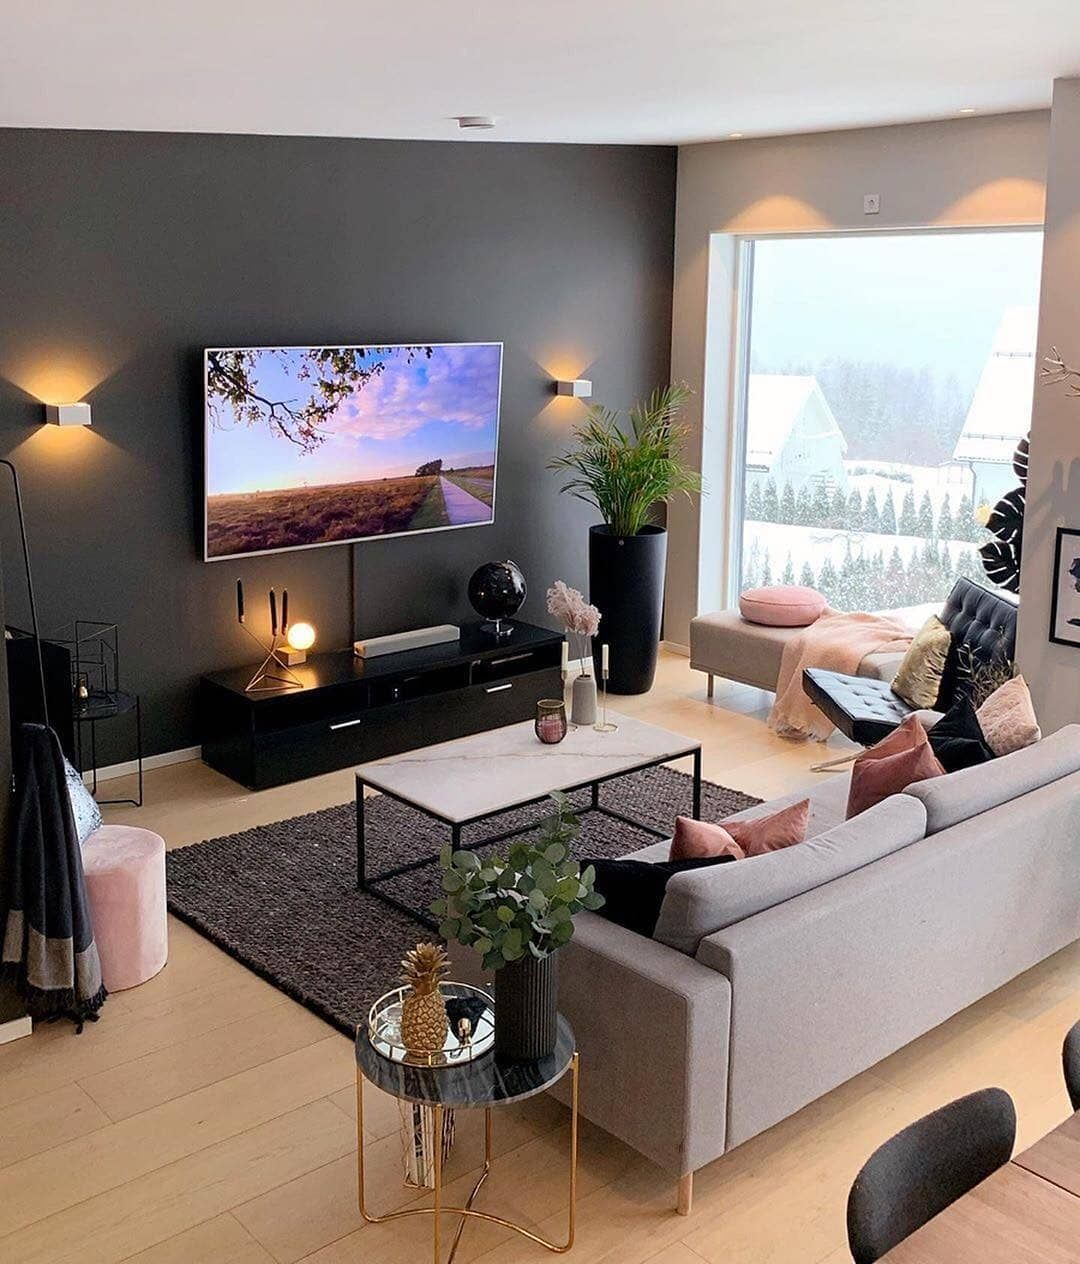 How To Add More Style To Your Living Room With These Lighting Designs Www Lightingstores Eu Visit Our Blog For More Inspiratio